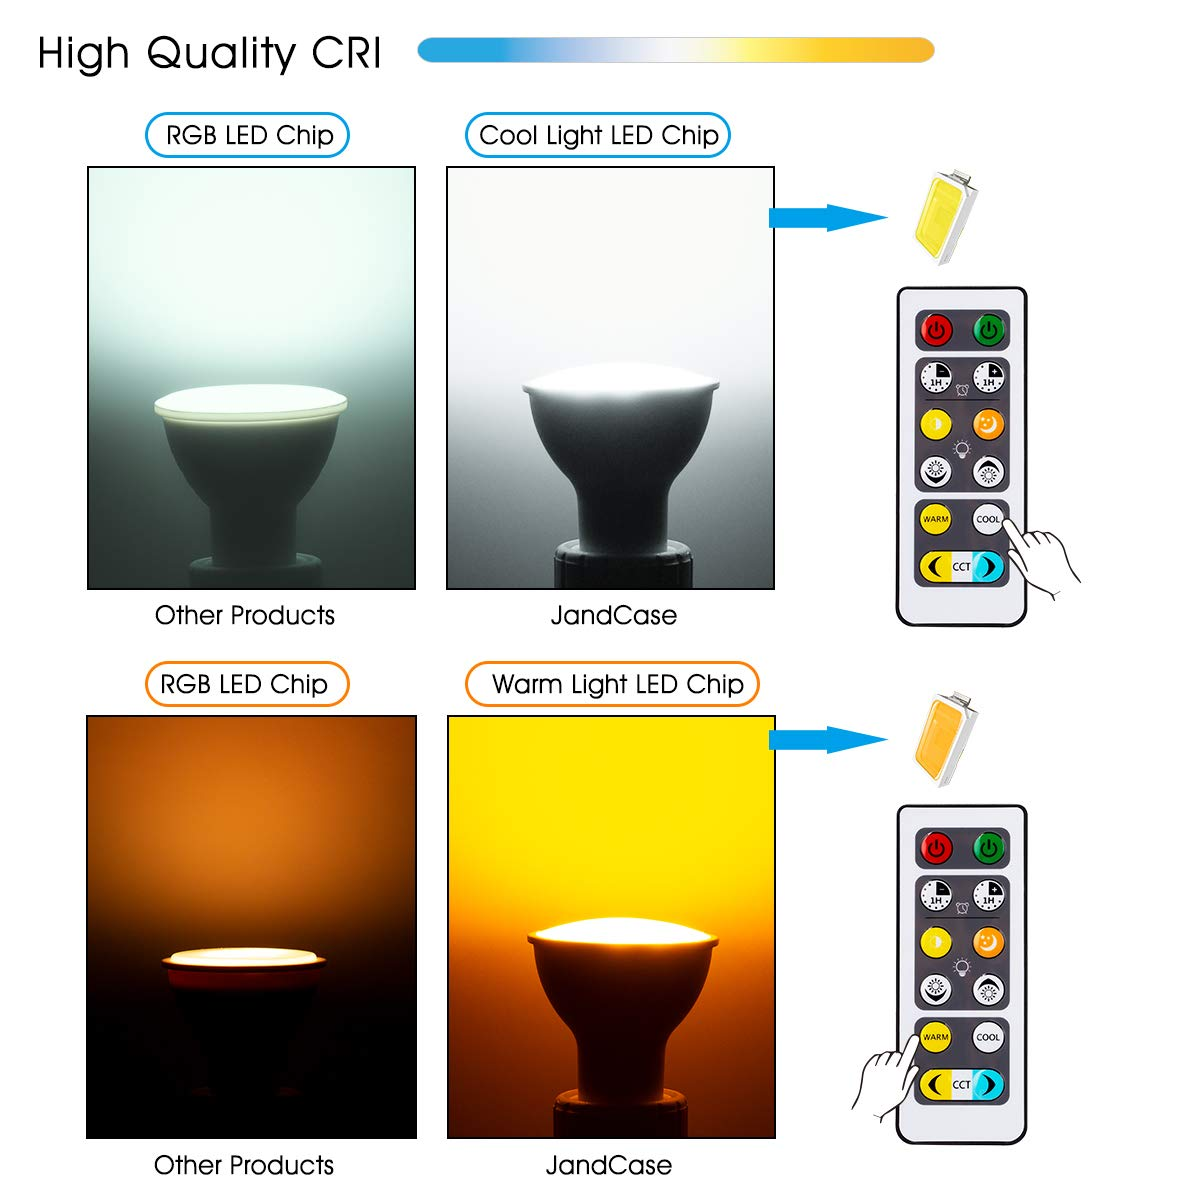 350lm Adjustable Home Lighting Dimmable Warm Cool White JandCase GU10 Tunable LED Bulbs with Remote Control 5W Color Changing Light Bulbs Available 2700K-6500K 2 Pack 40W Equivalent